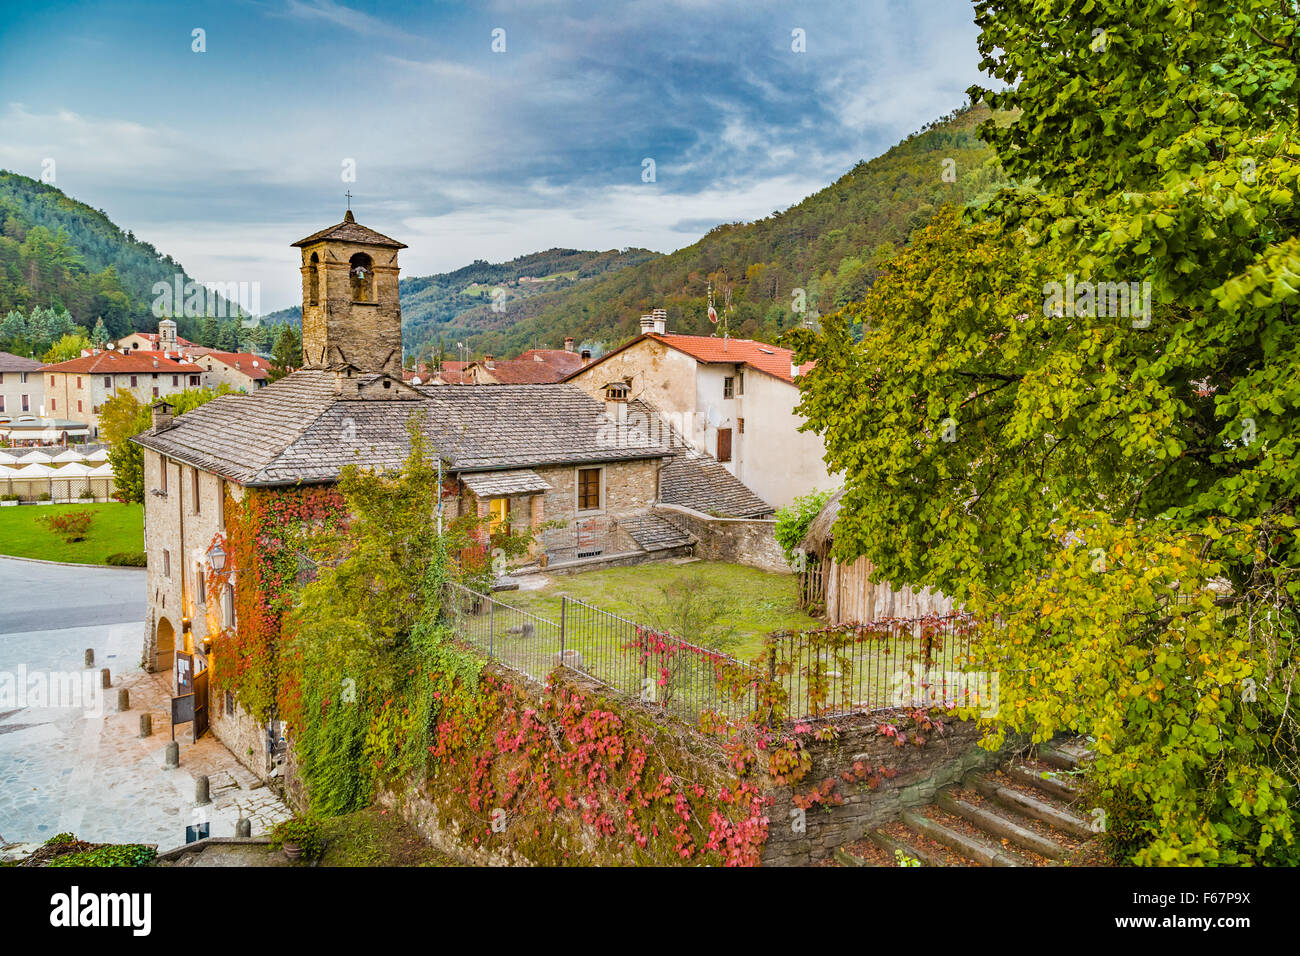 The Palace of the Captains in medieval mountain village in Tuscany characterized by houses with walls of stones Stock Photo